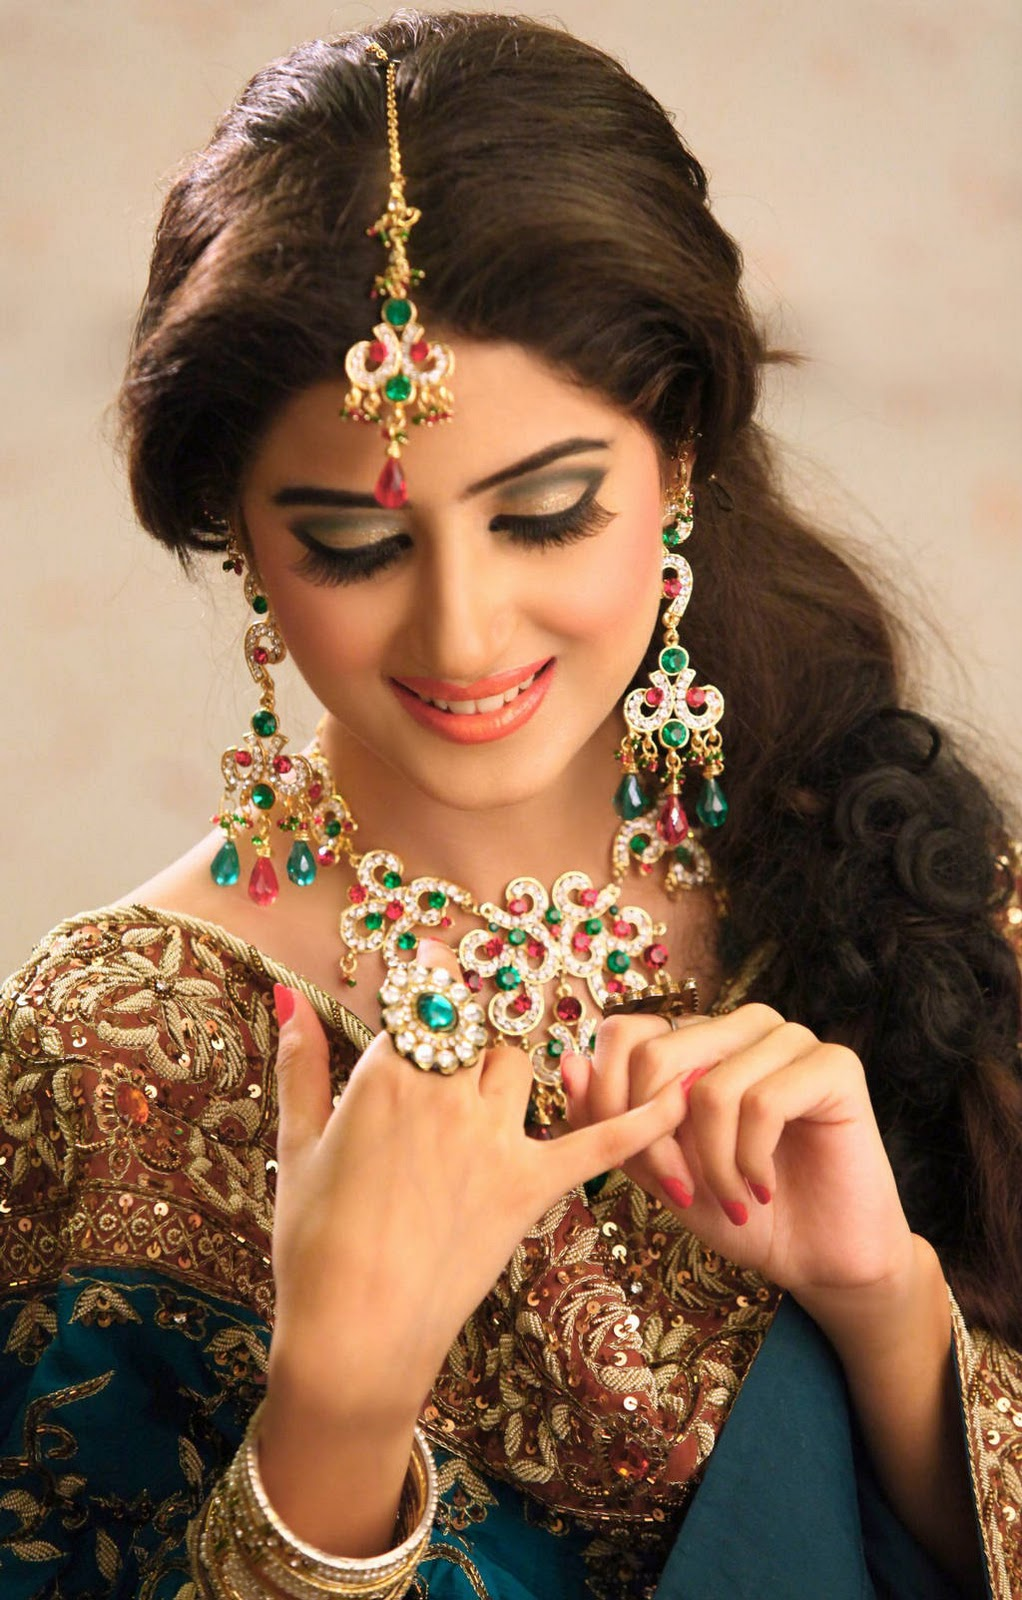 The cutest pakistani actress - Sajal Ali in bridal dress `